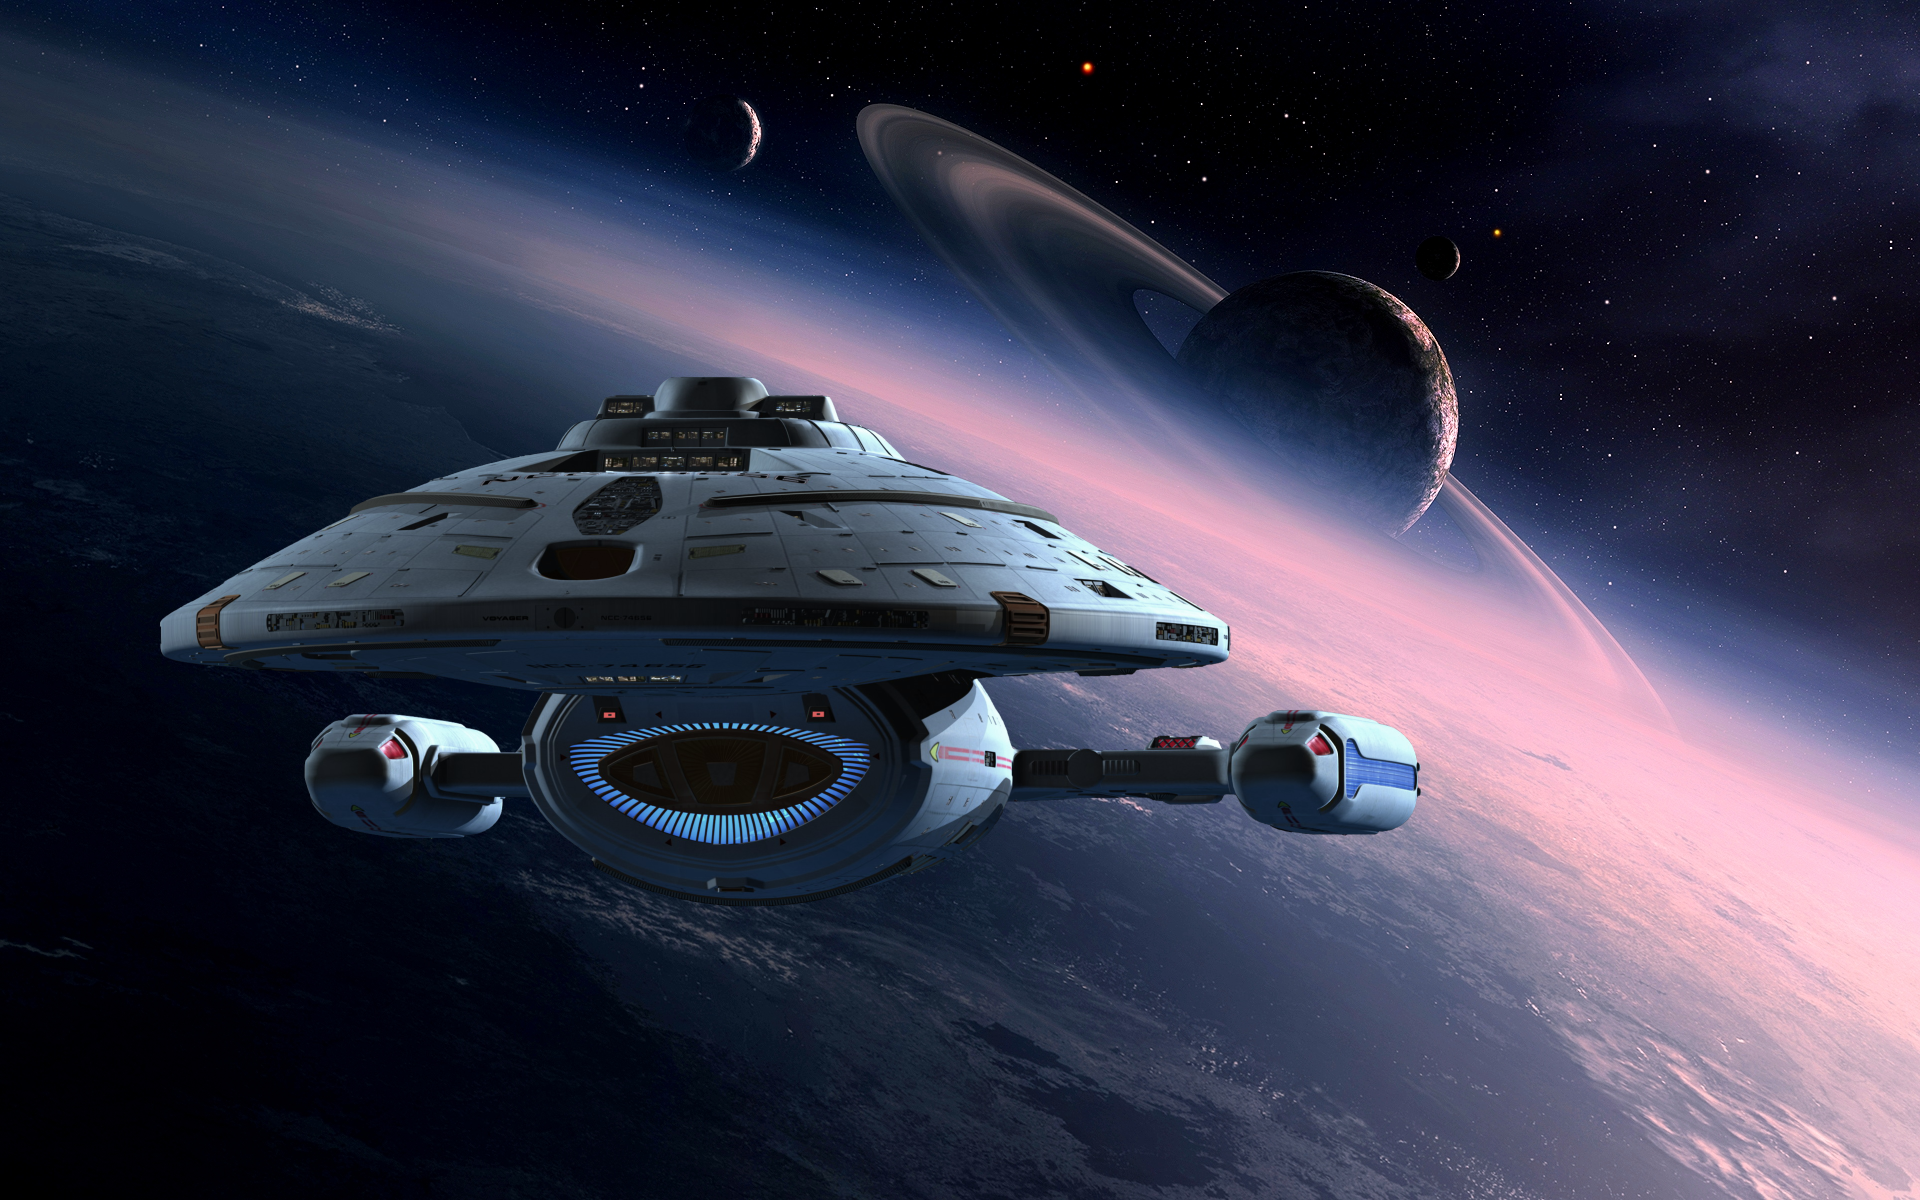 28 Star Trek Voyager Hd Wallpapers Background Images